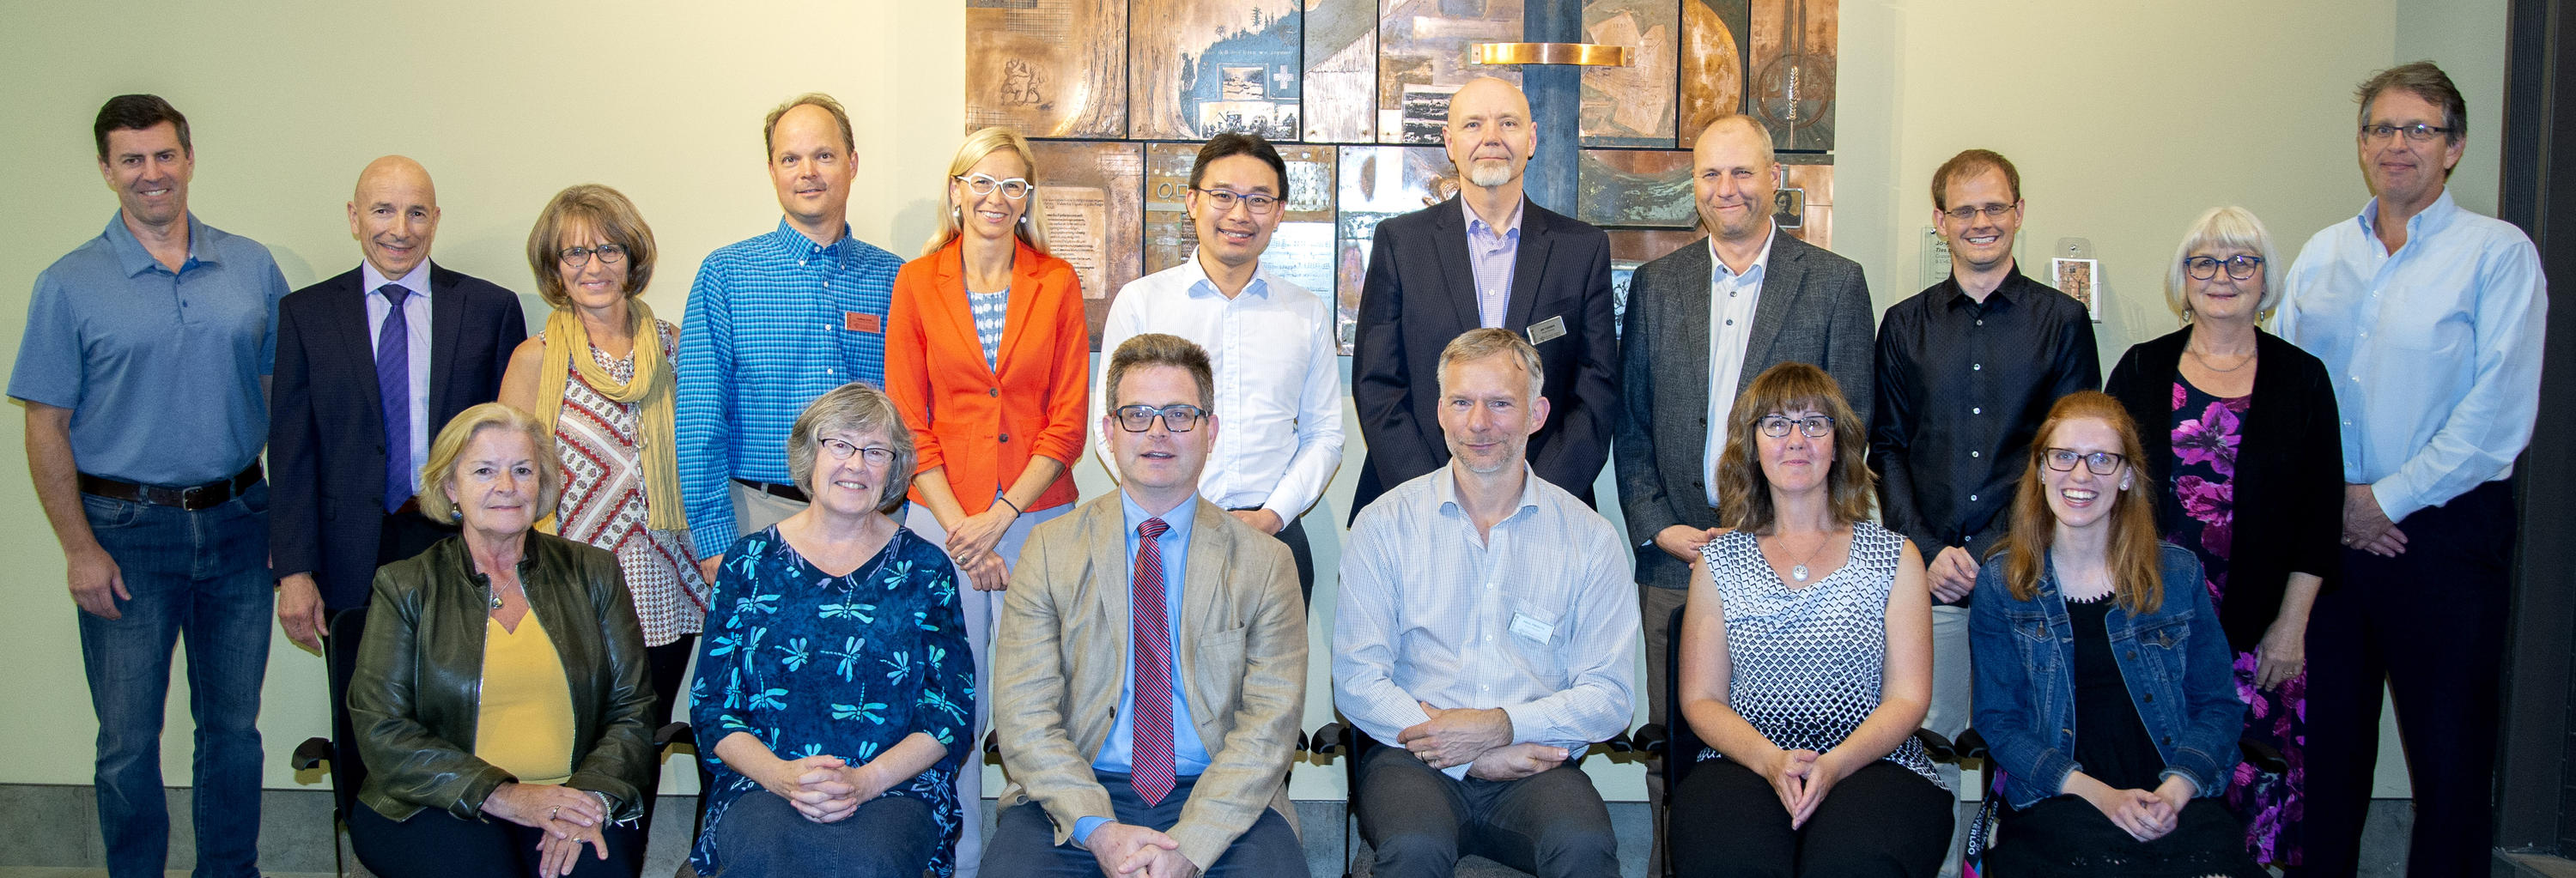 2019-20 Grebel Board of Governors